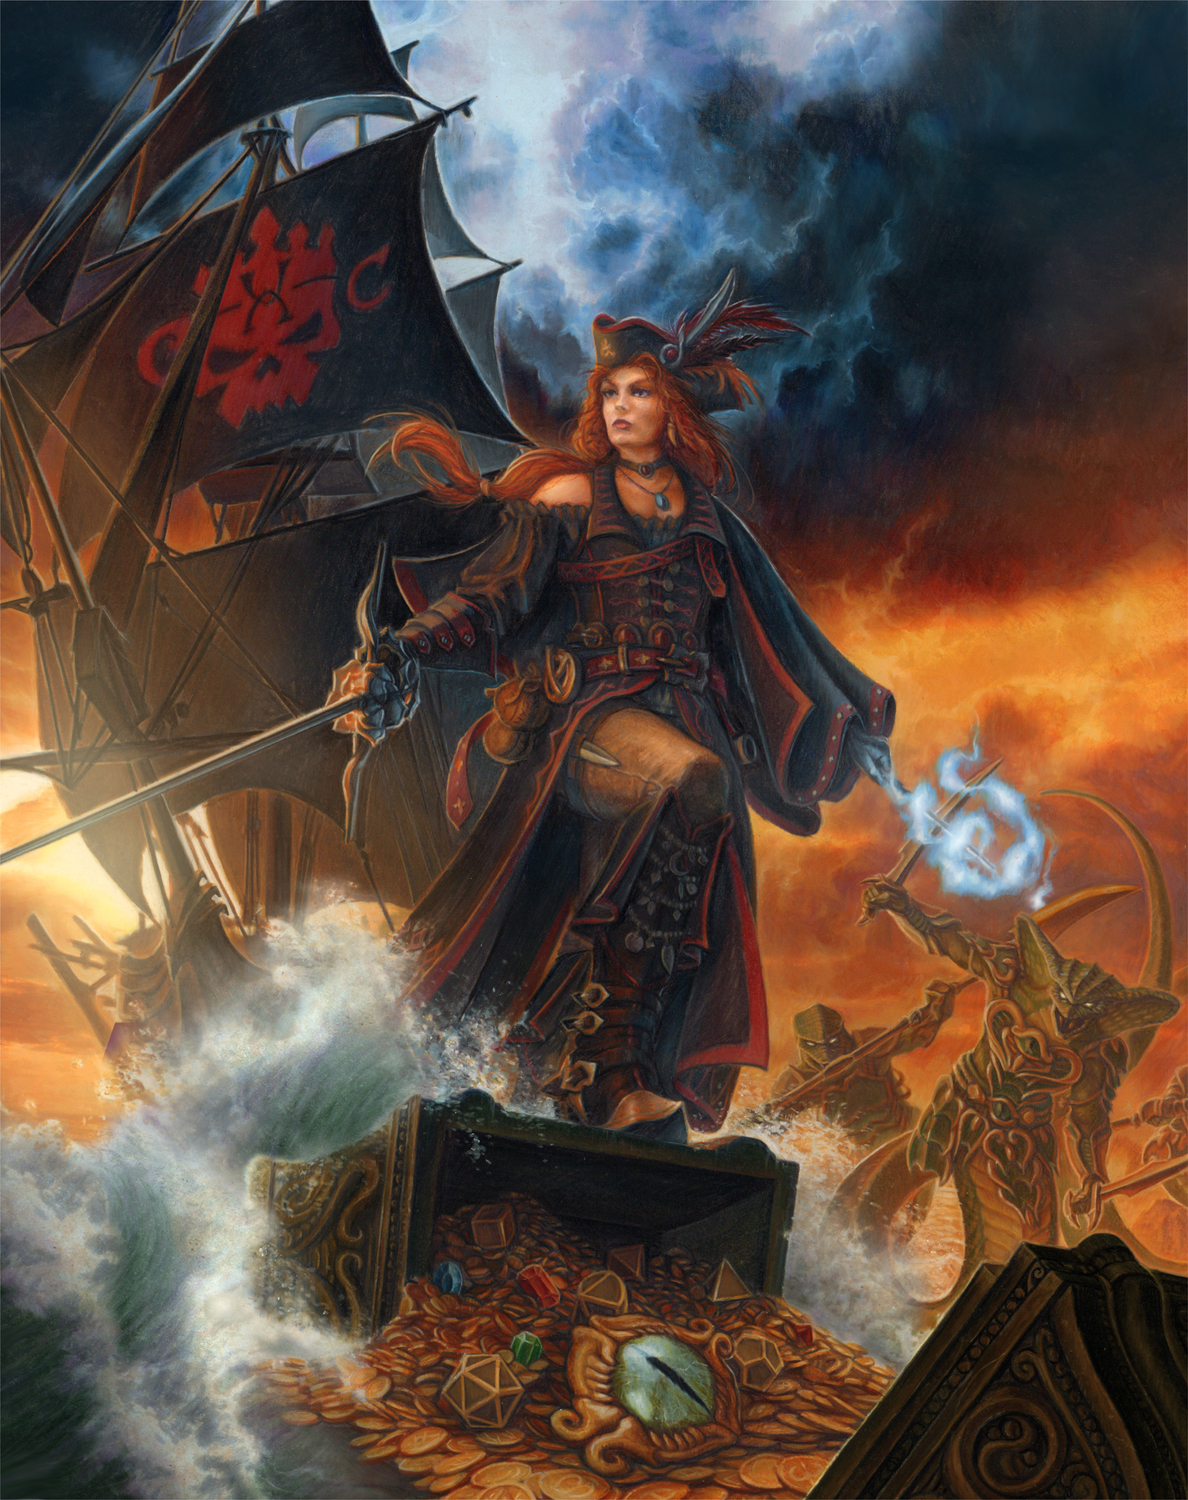 The Pirate Queen Artwork by Charles Urbach